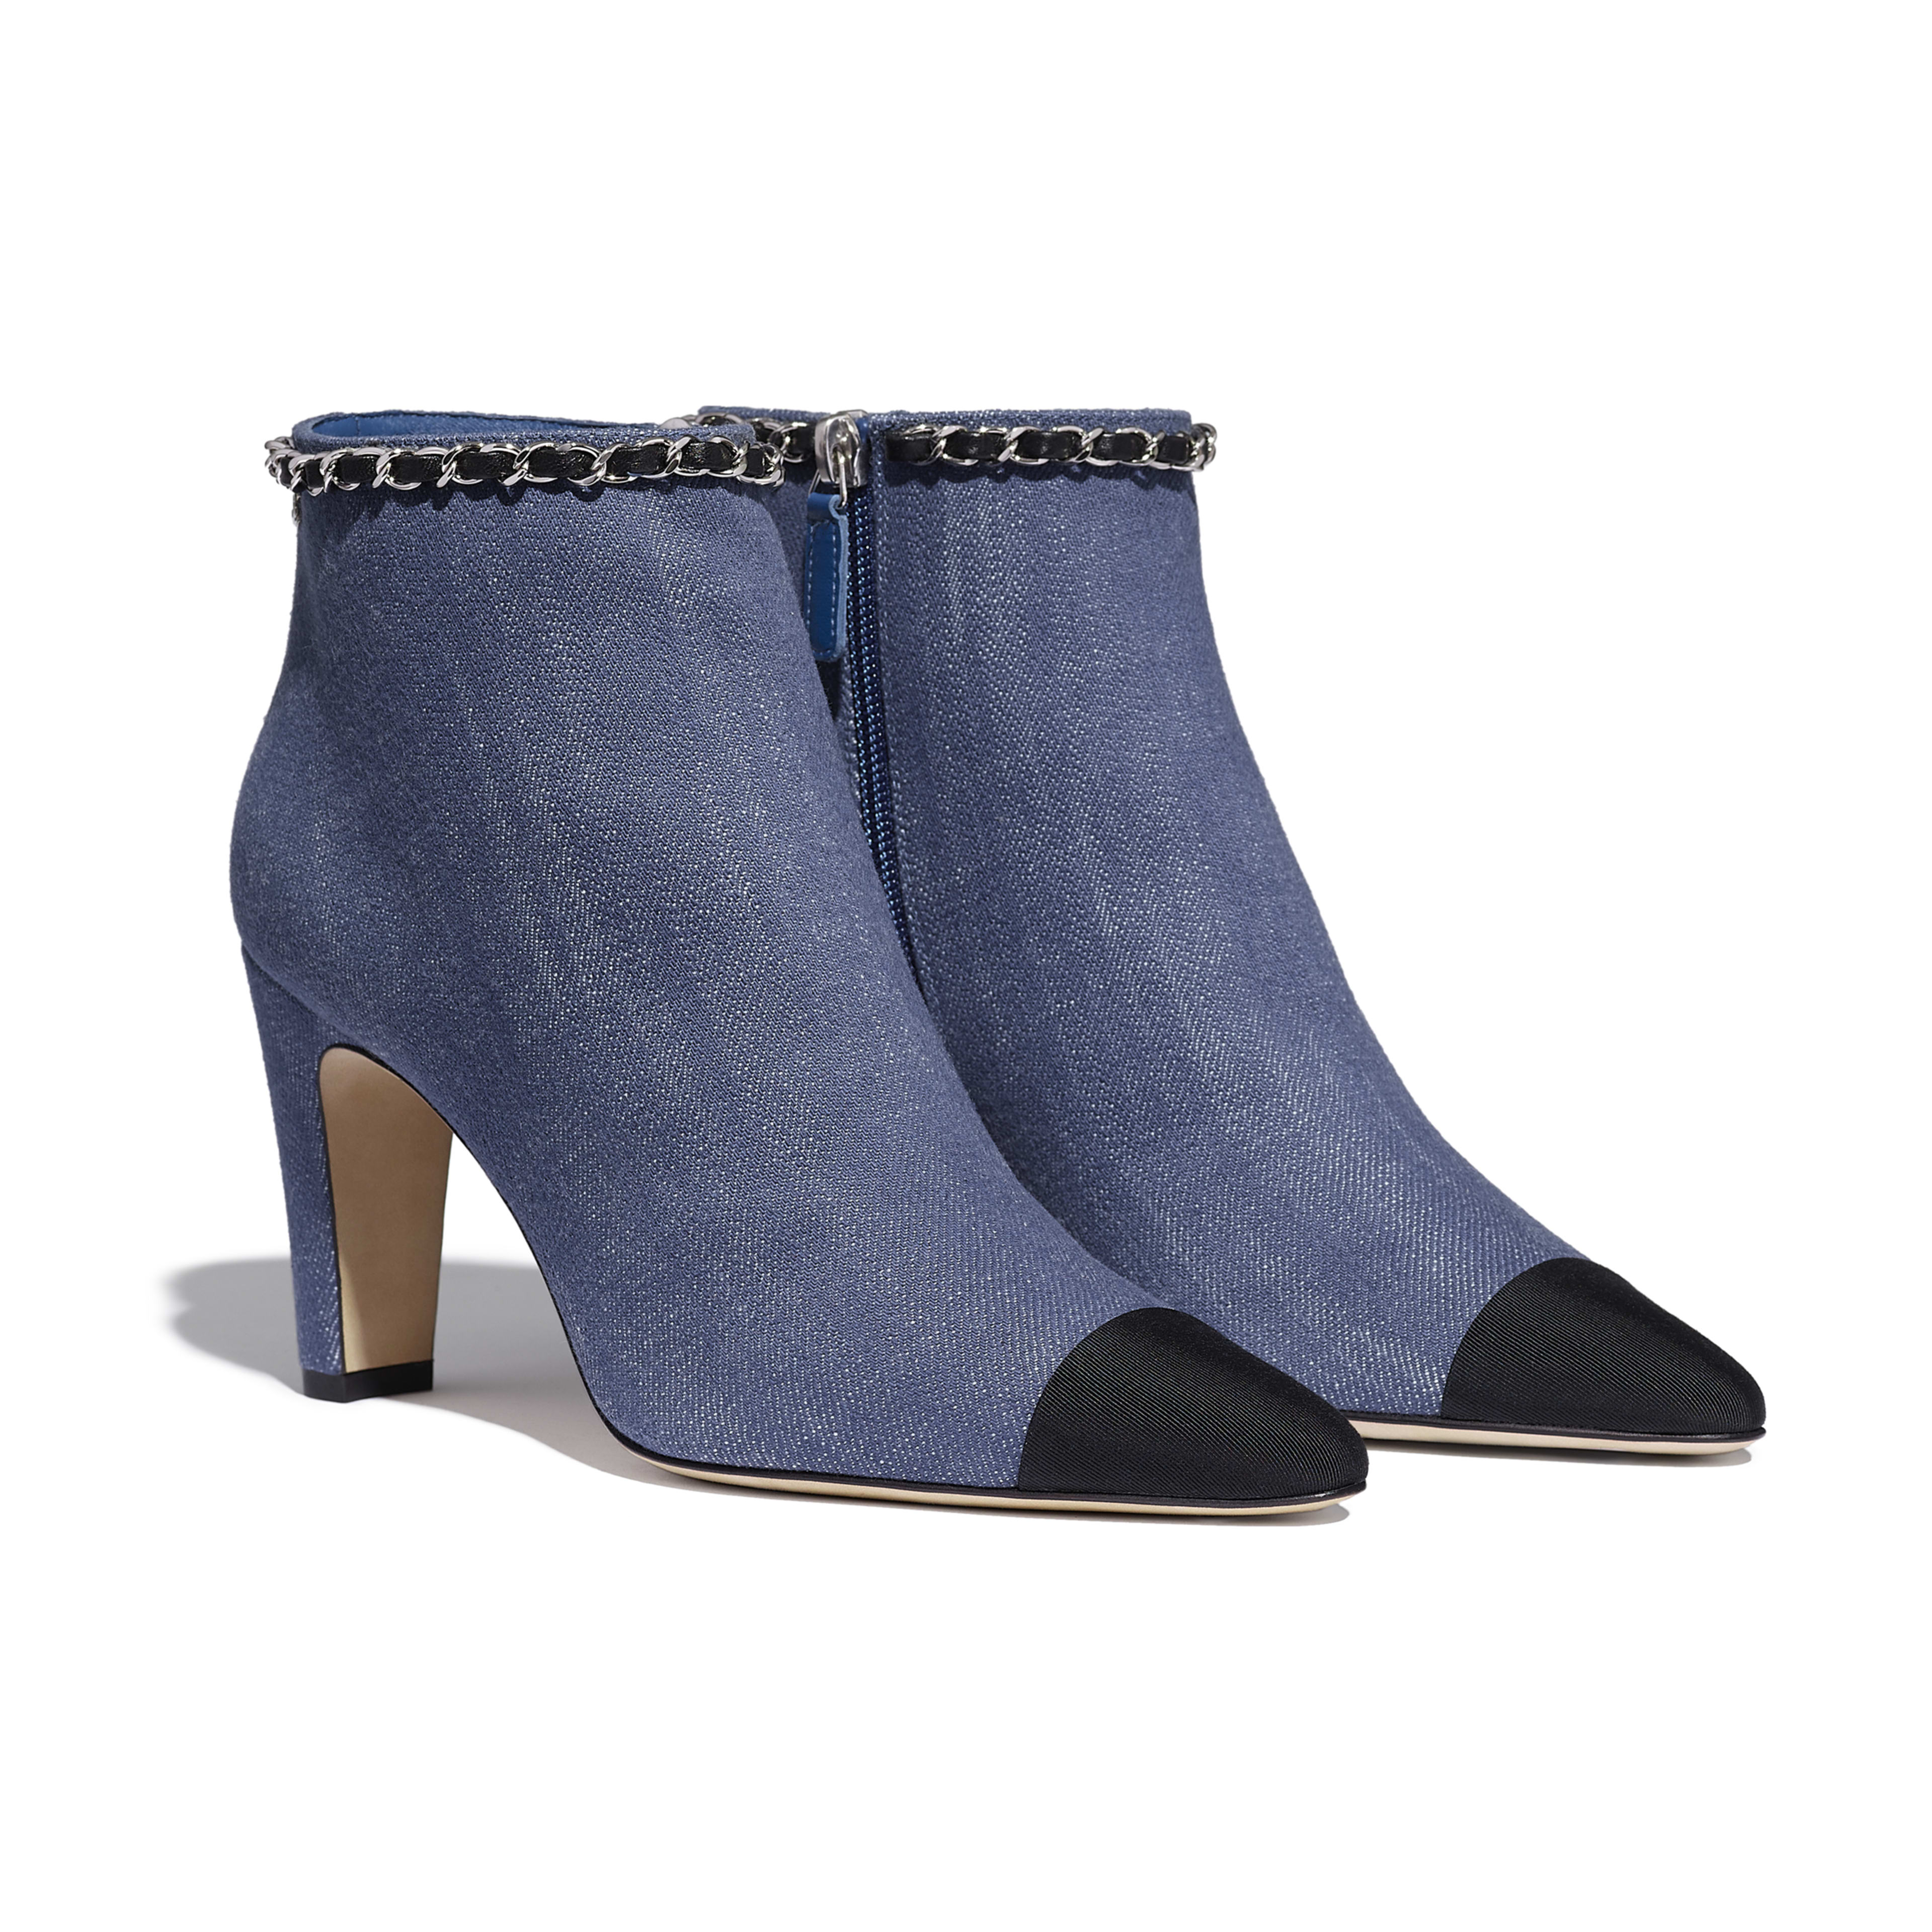 Ankle Boots - Blue & Black - Fabric - Alternative view - see full sized version